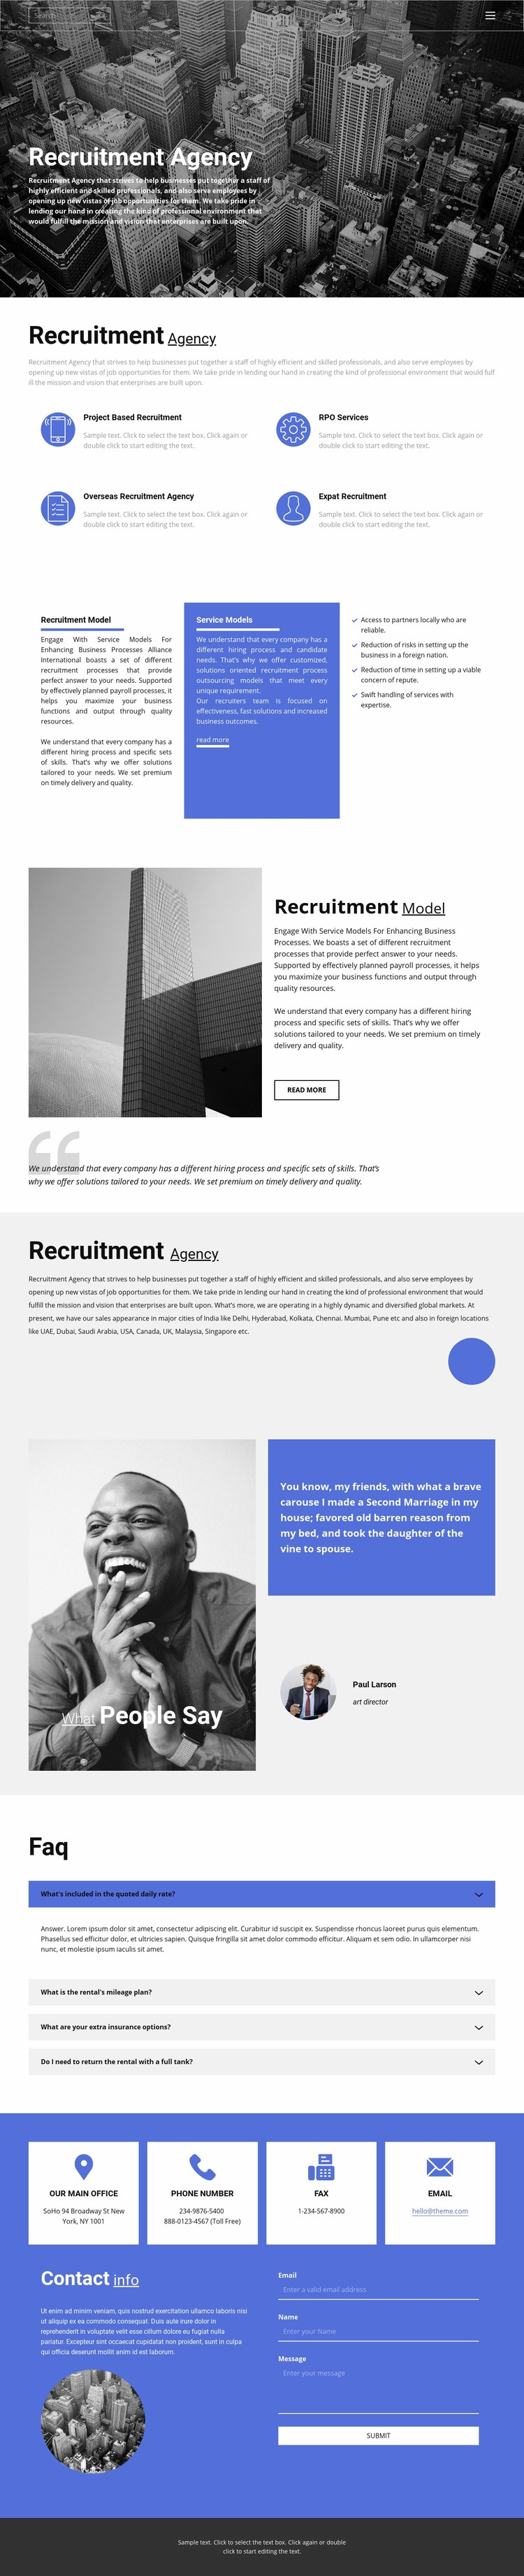 Recruiting agency with good experience Web Page Design